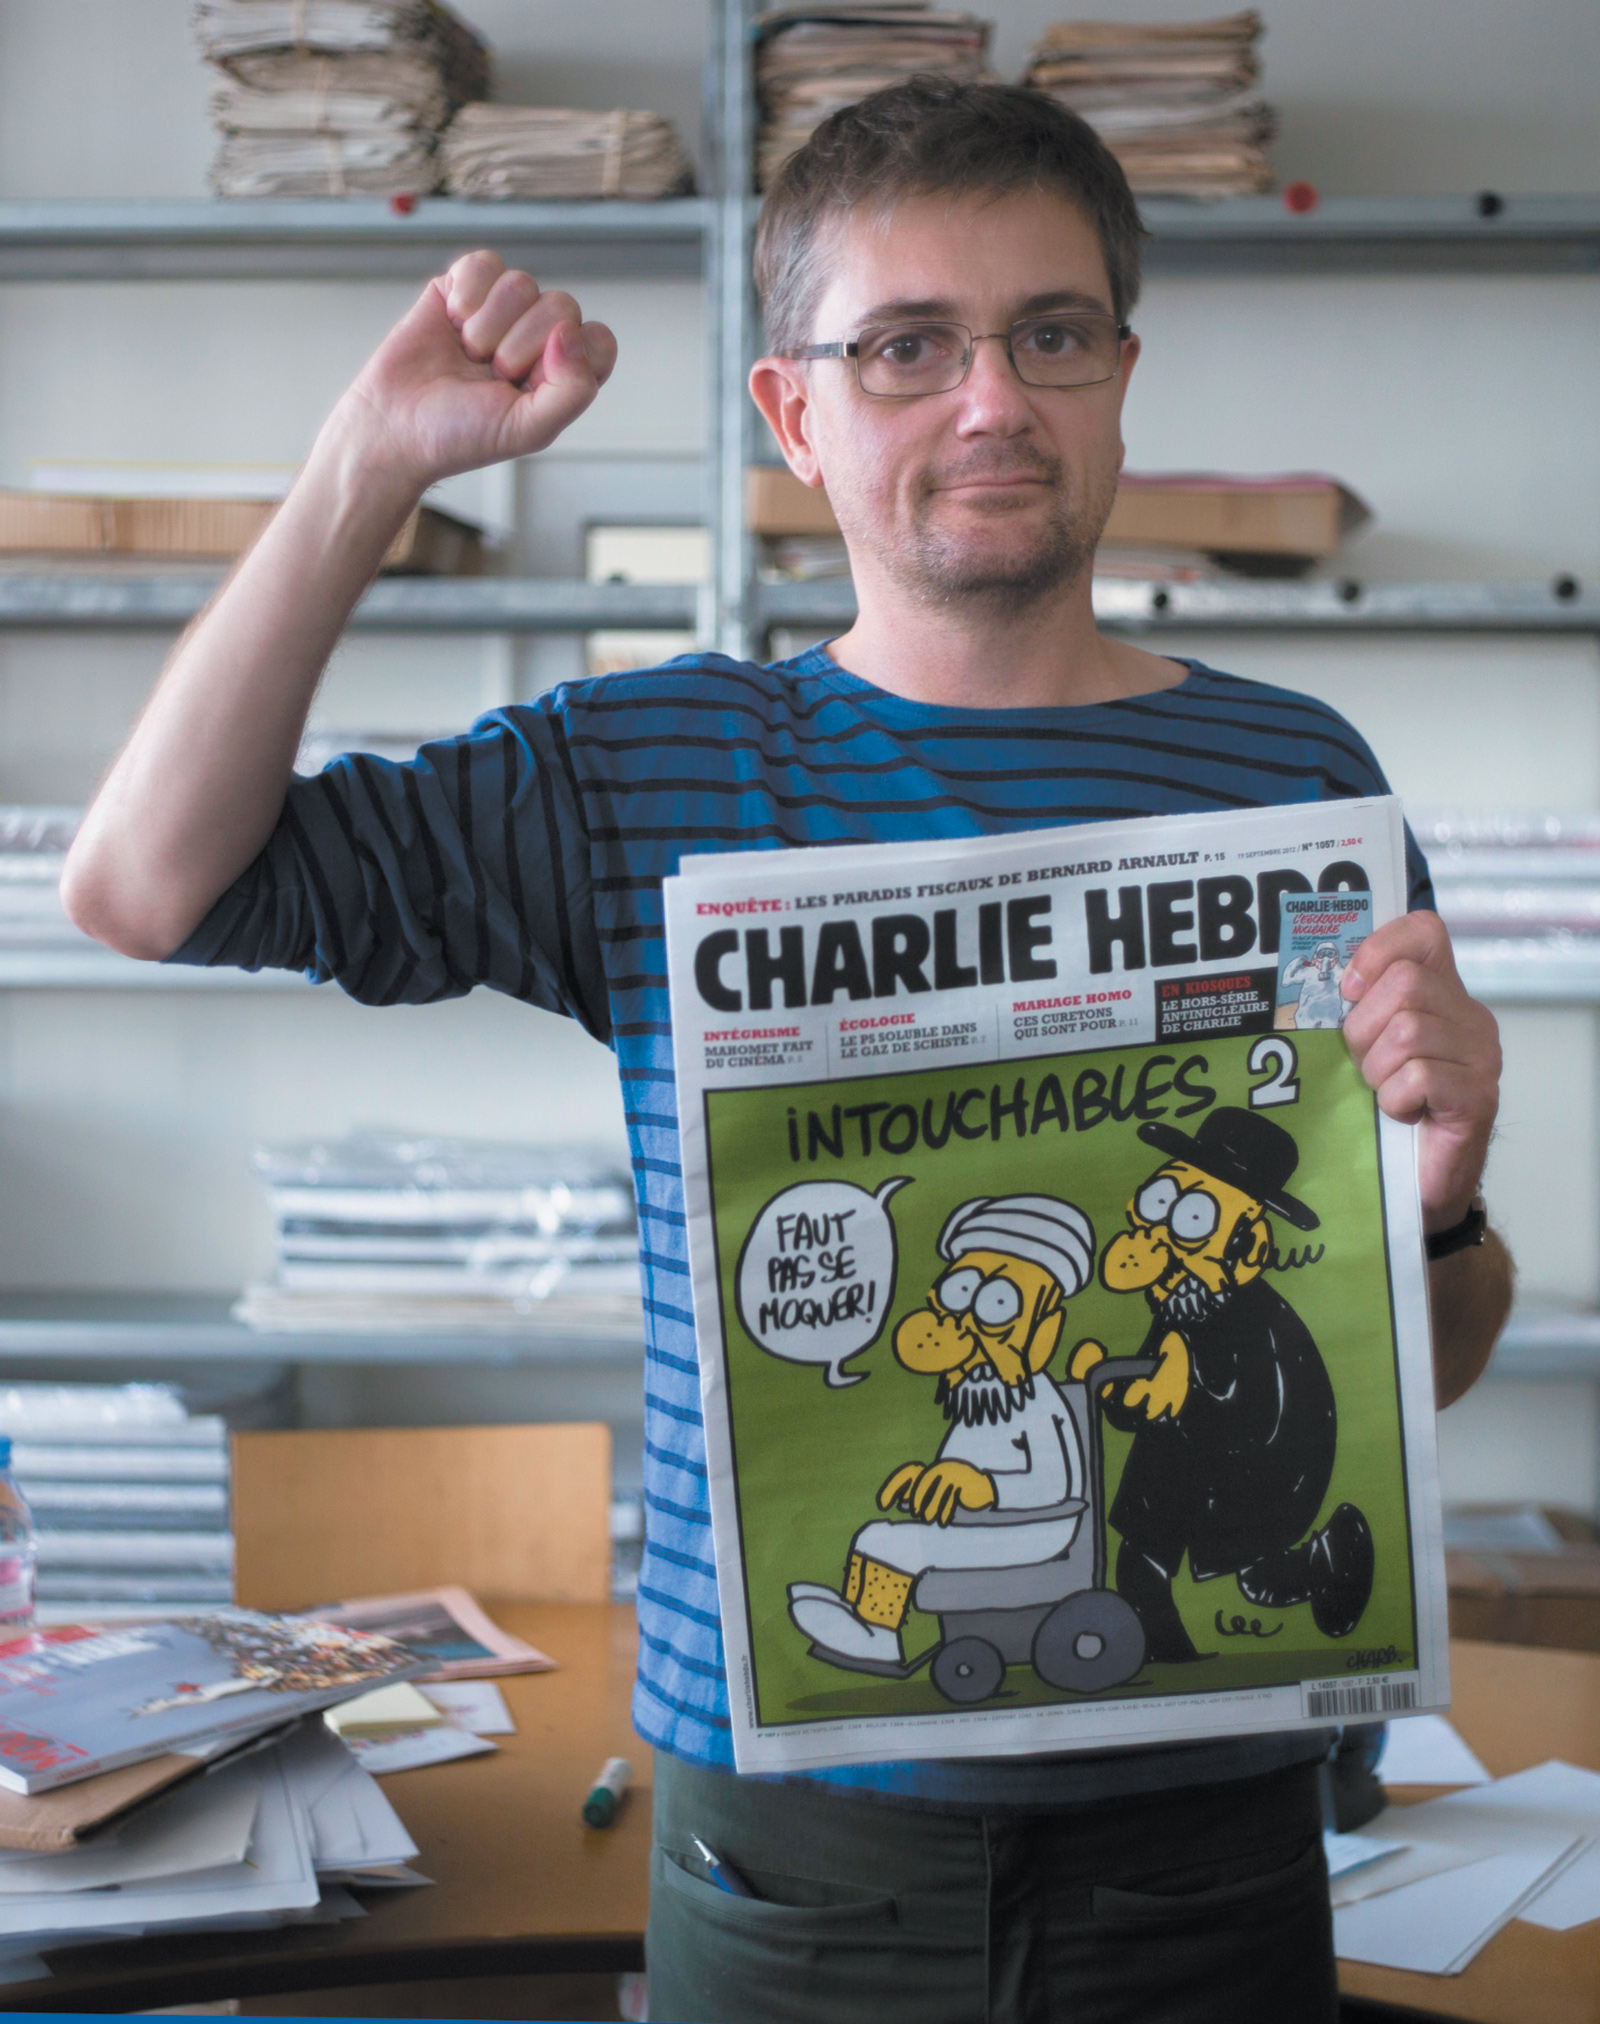 Stéphane Charbonnier, known as Charb, the editor in chief of Charlie Hebdo from 2005 until his death in 2015, at the magazine's office in Paris, September 2012